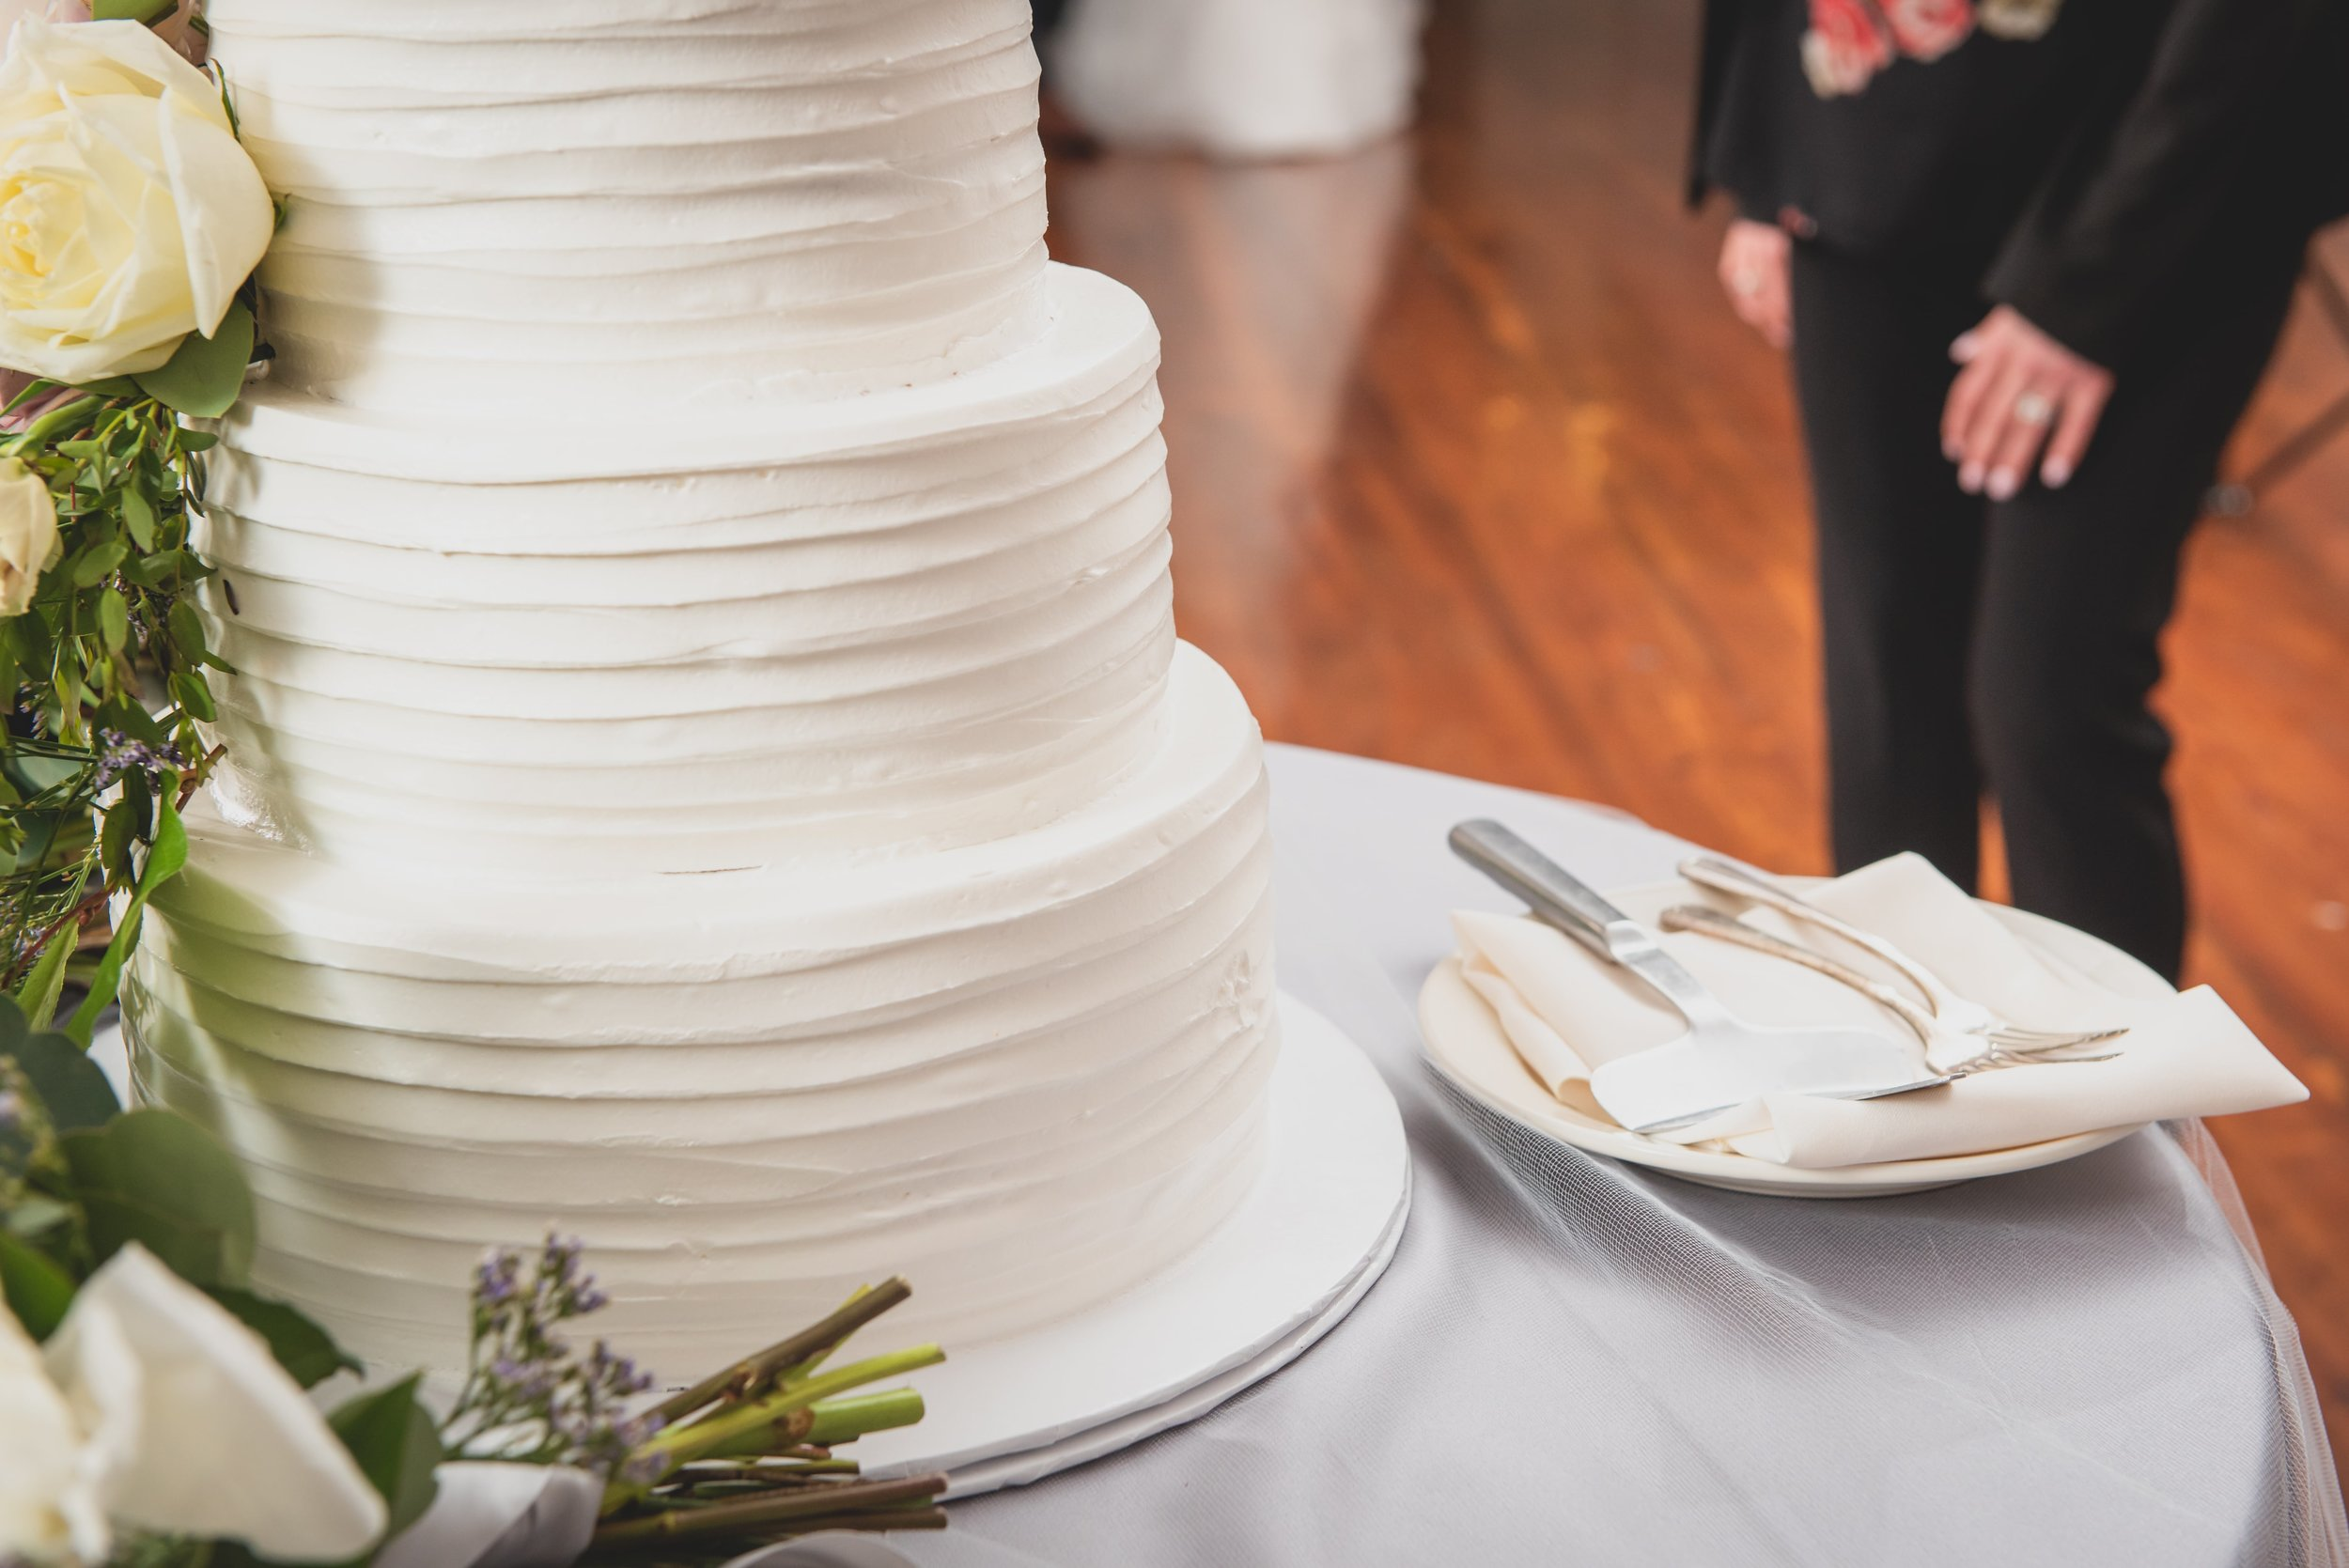 A close up of a wedding cake with the serving knife and two forks at the ready.